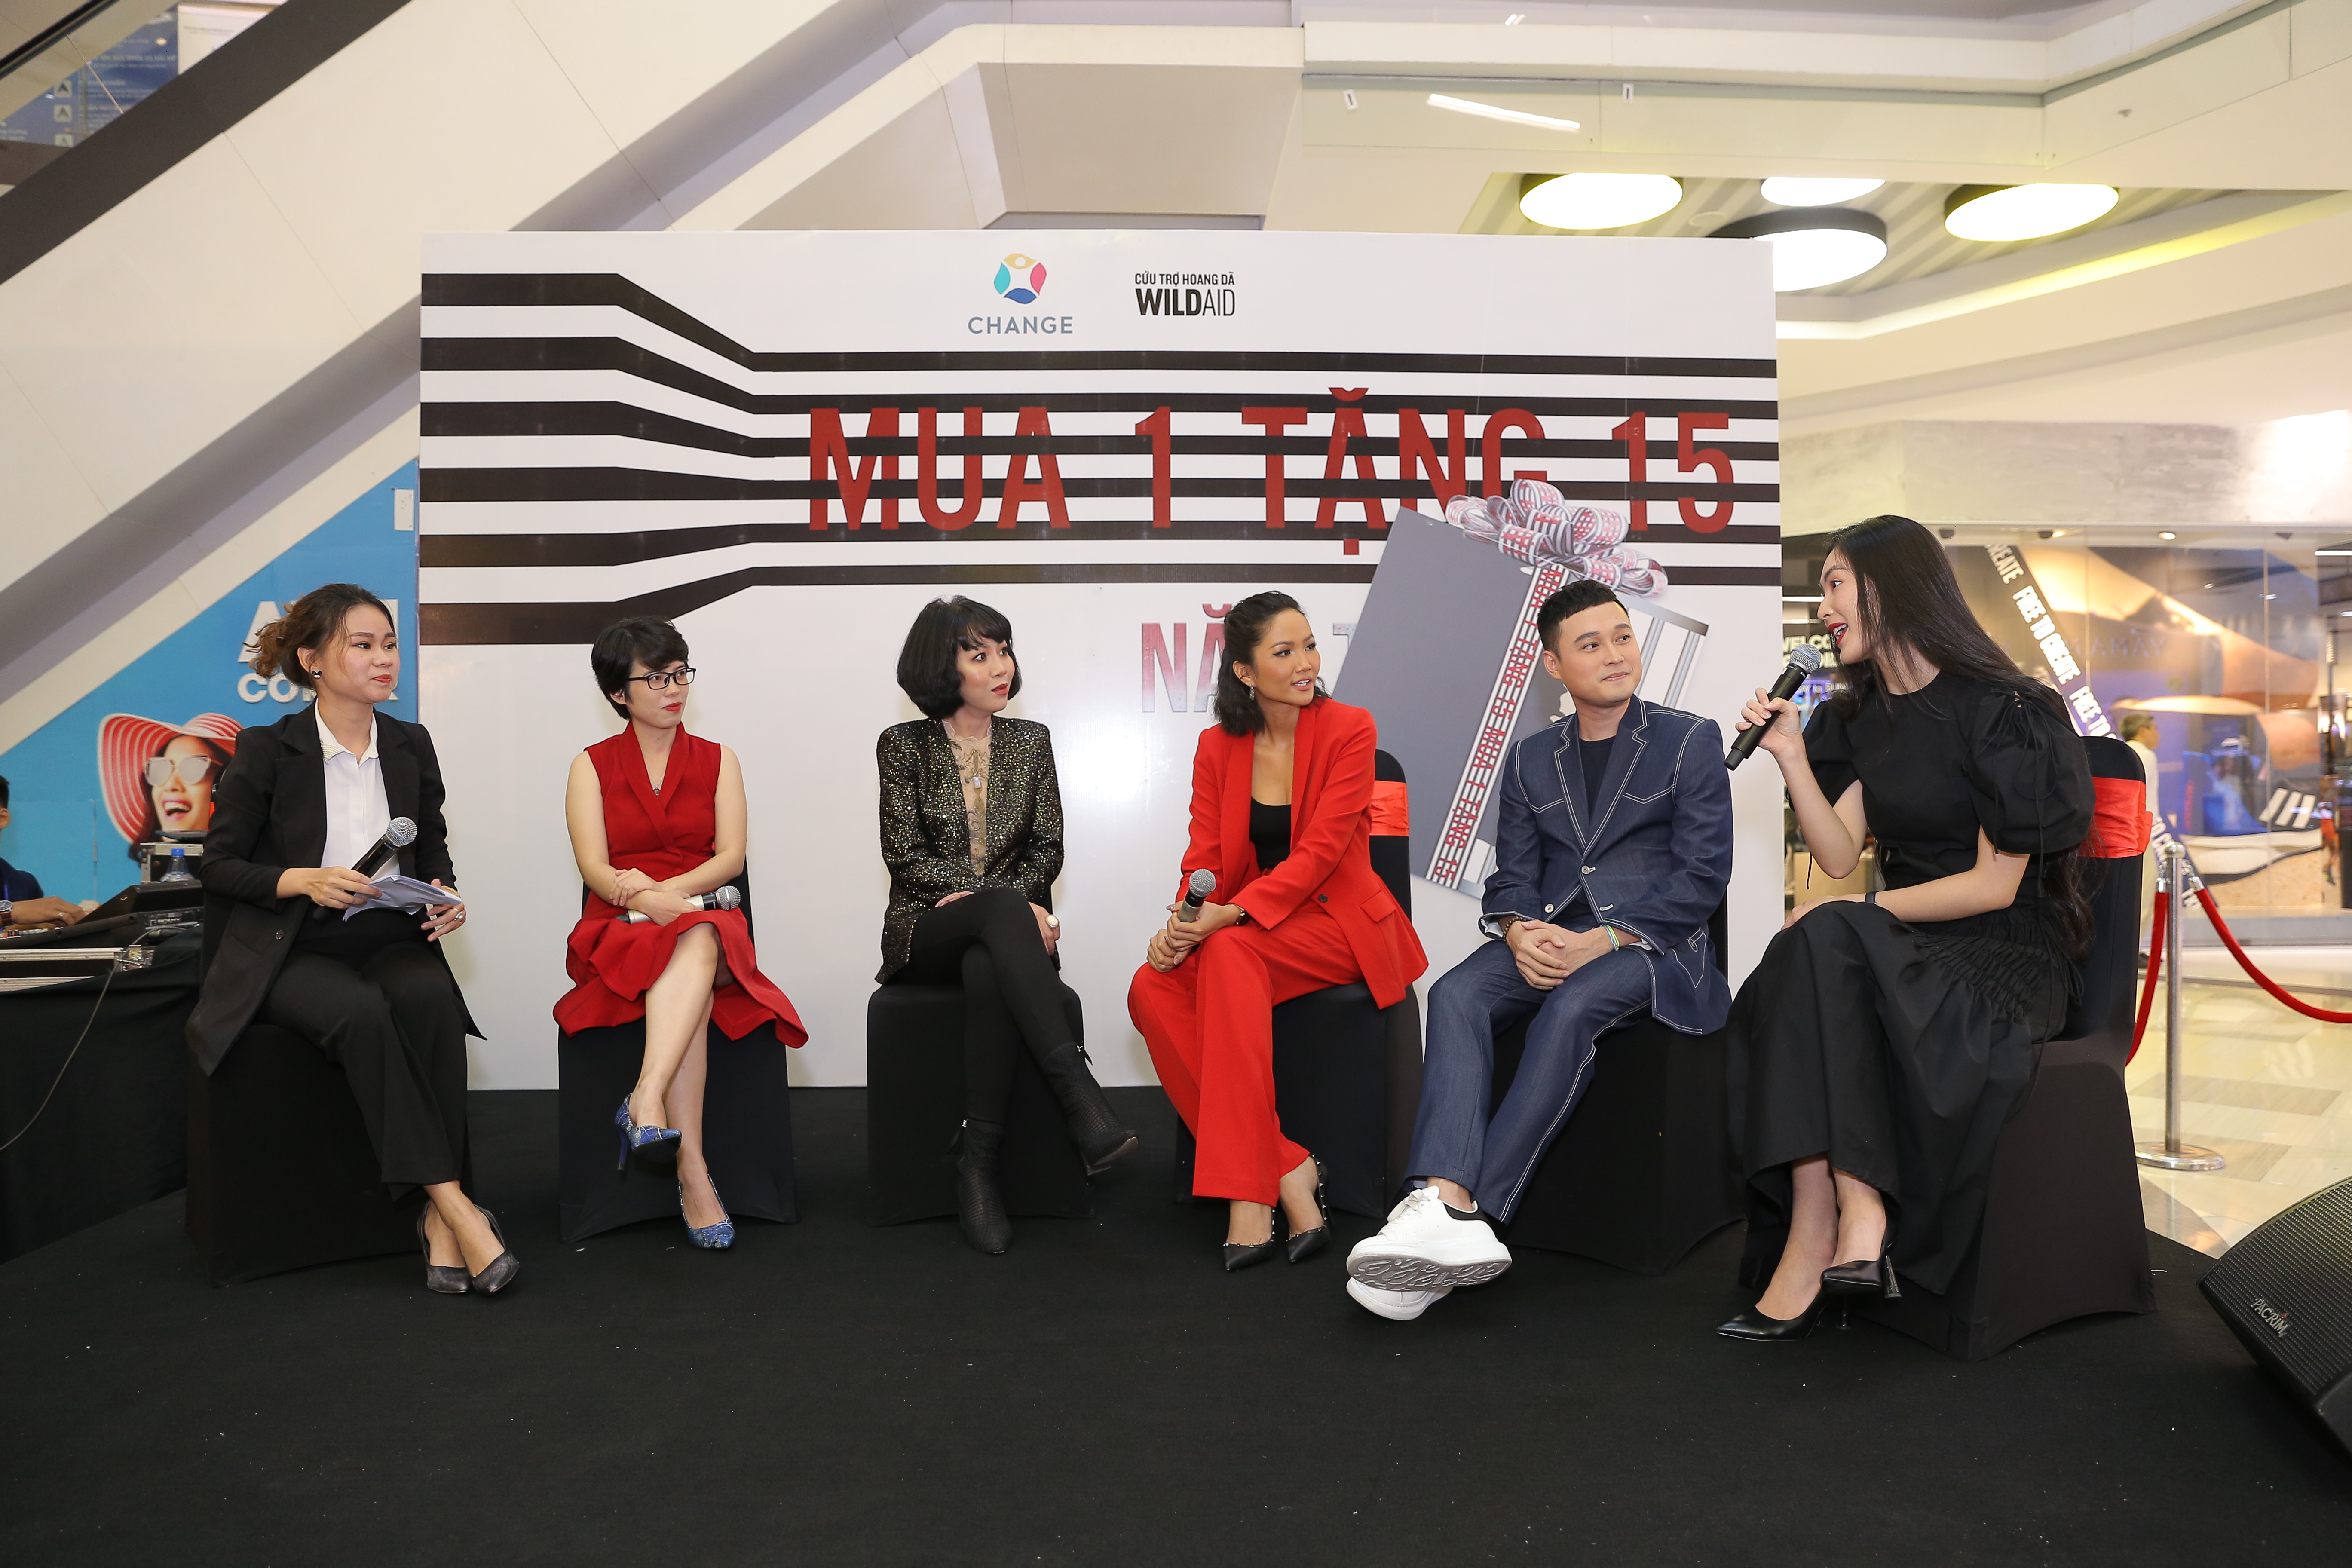 (From right) Businesswoman Helly Tong, singer Quang Vinh, Miss Universe Vietnam 2017 H'Hen Niê,  journalist Trac Thuy Mieu, and organizers of the 'Buy 1, Get 15' campaign against illegal wildlife trafficking attend an event in Ho Chi Minh City on December 30, 2019. Photo: CHANGE